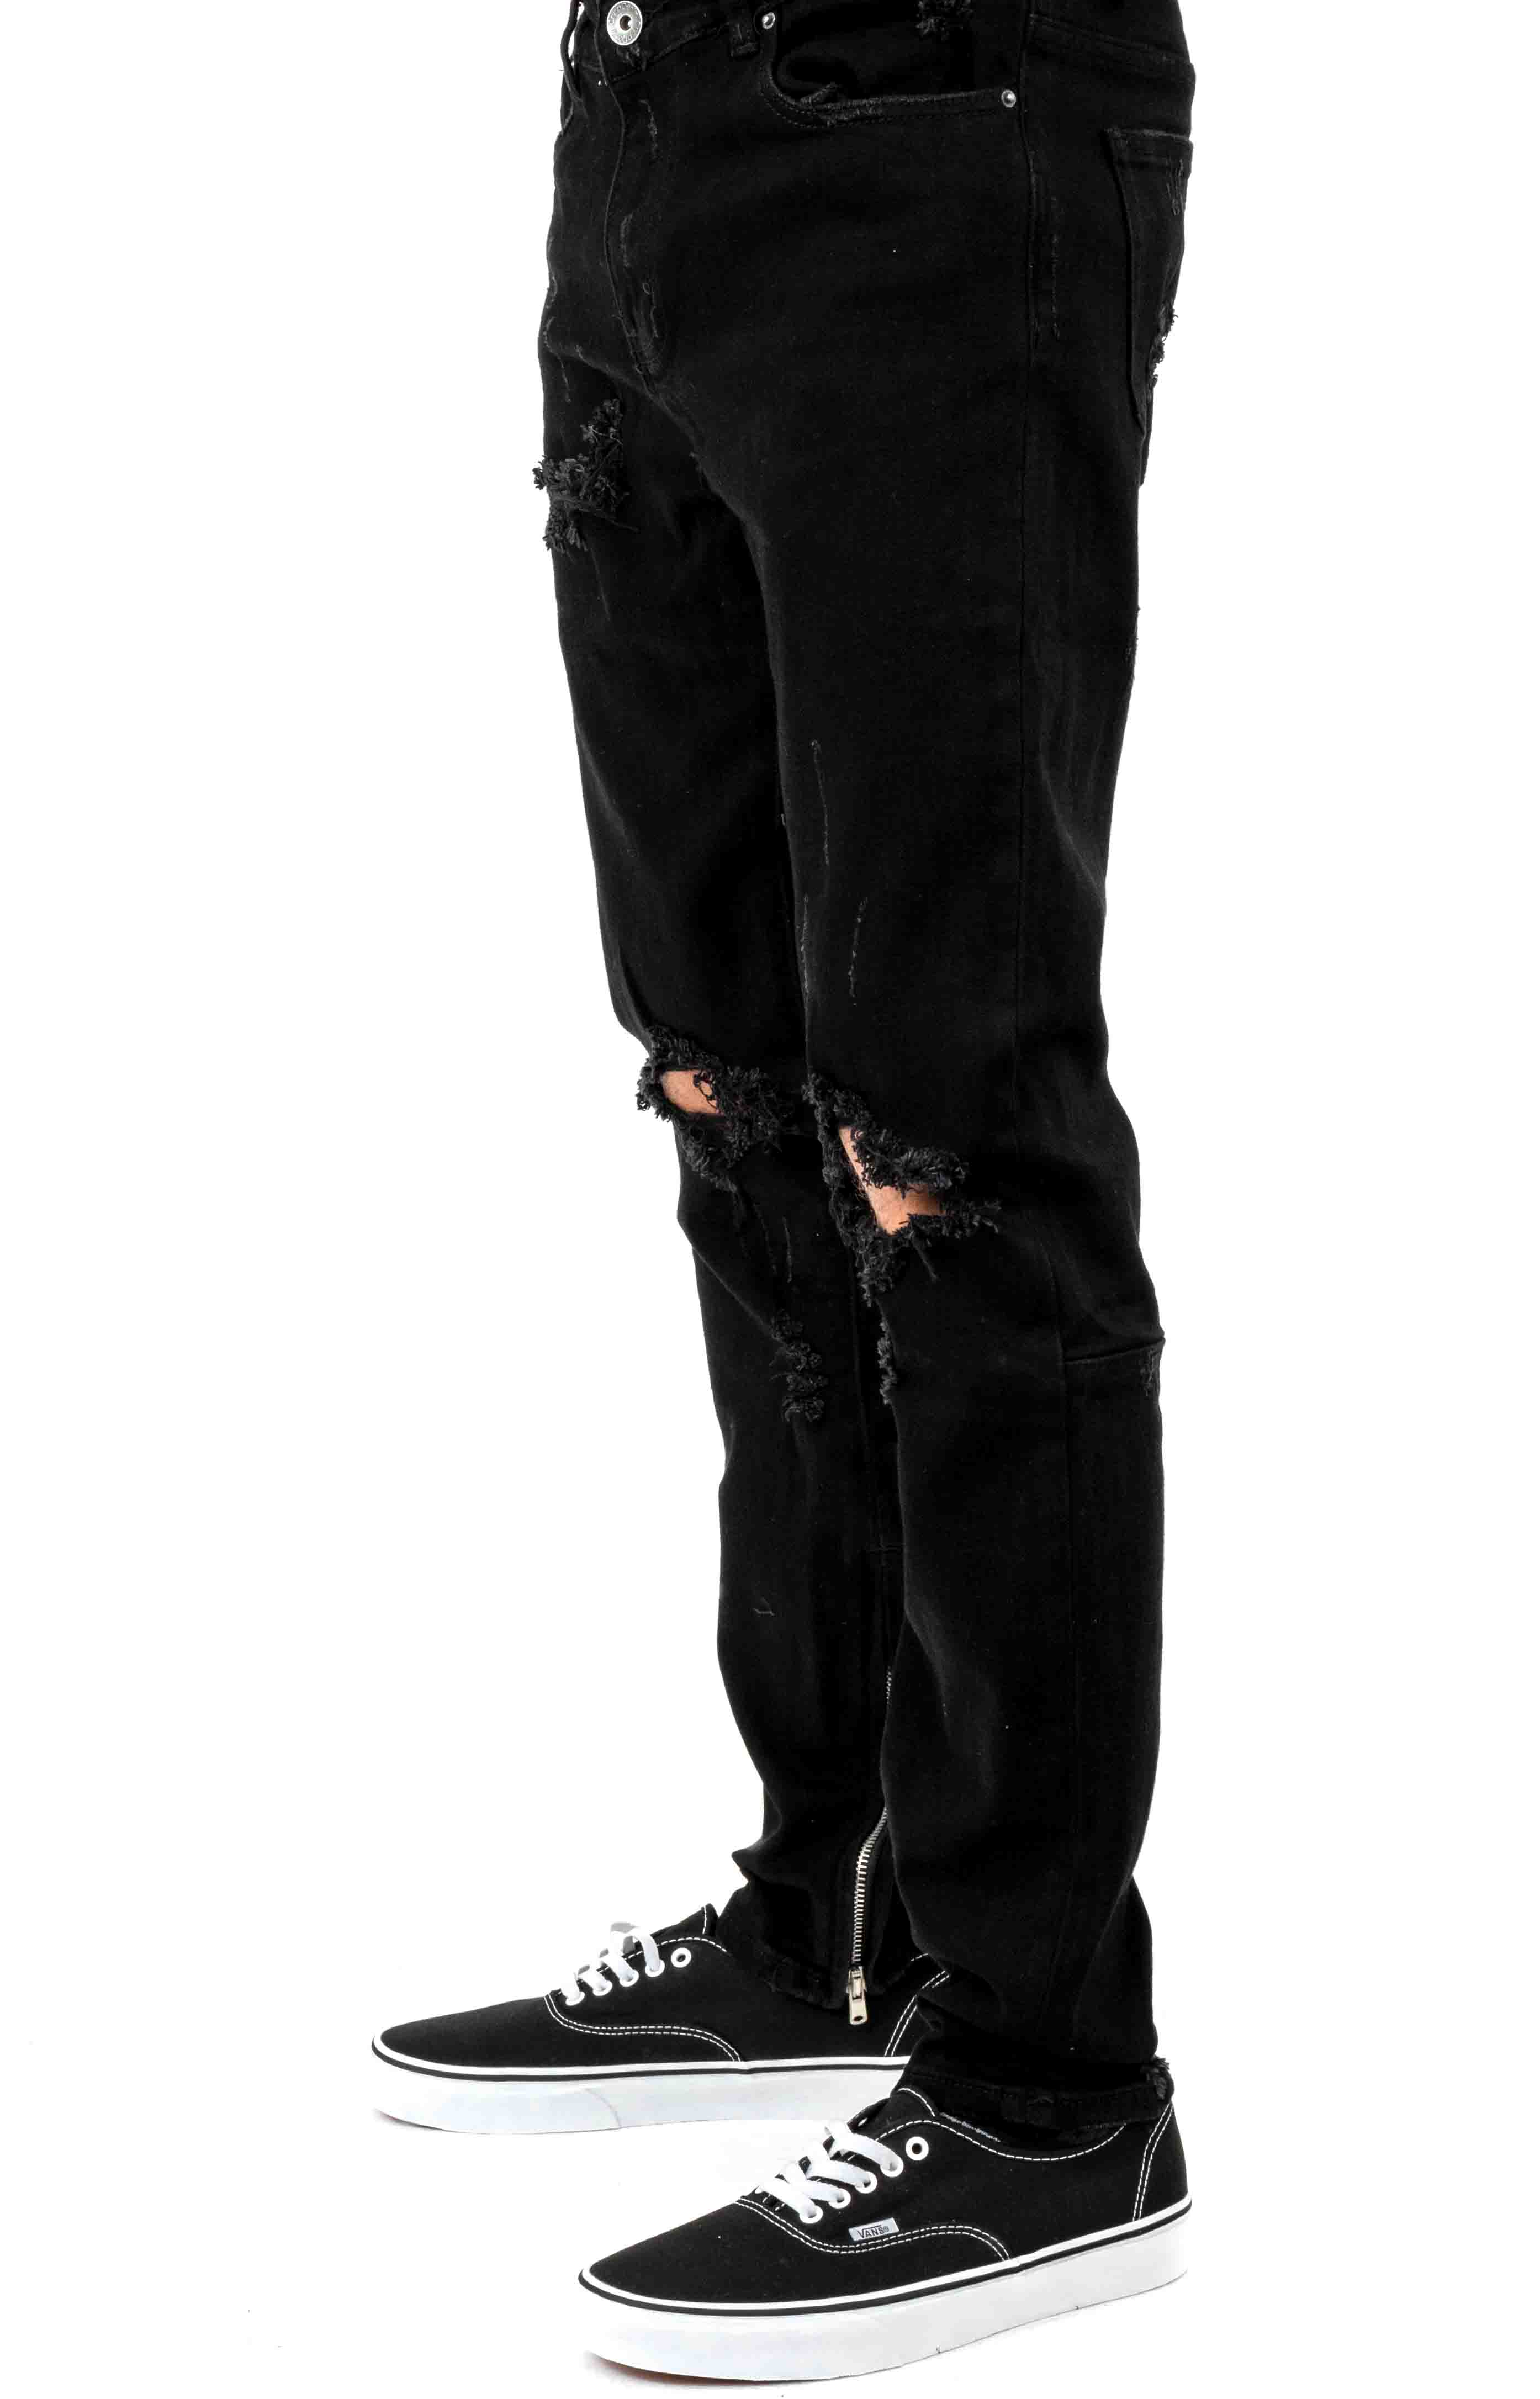 (PAC-16) Pacific Denim Jeans - Black Ripped 2